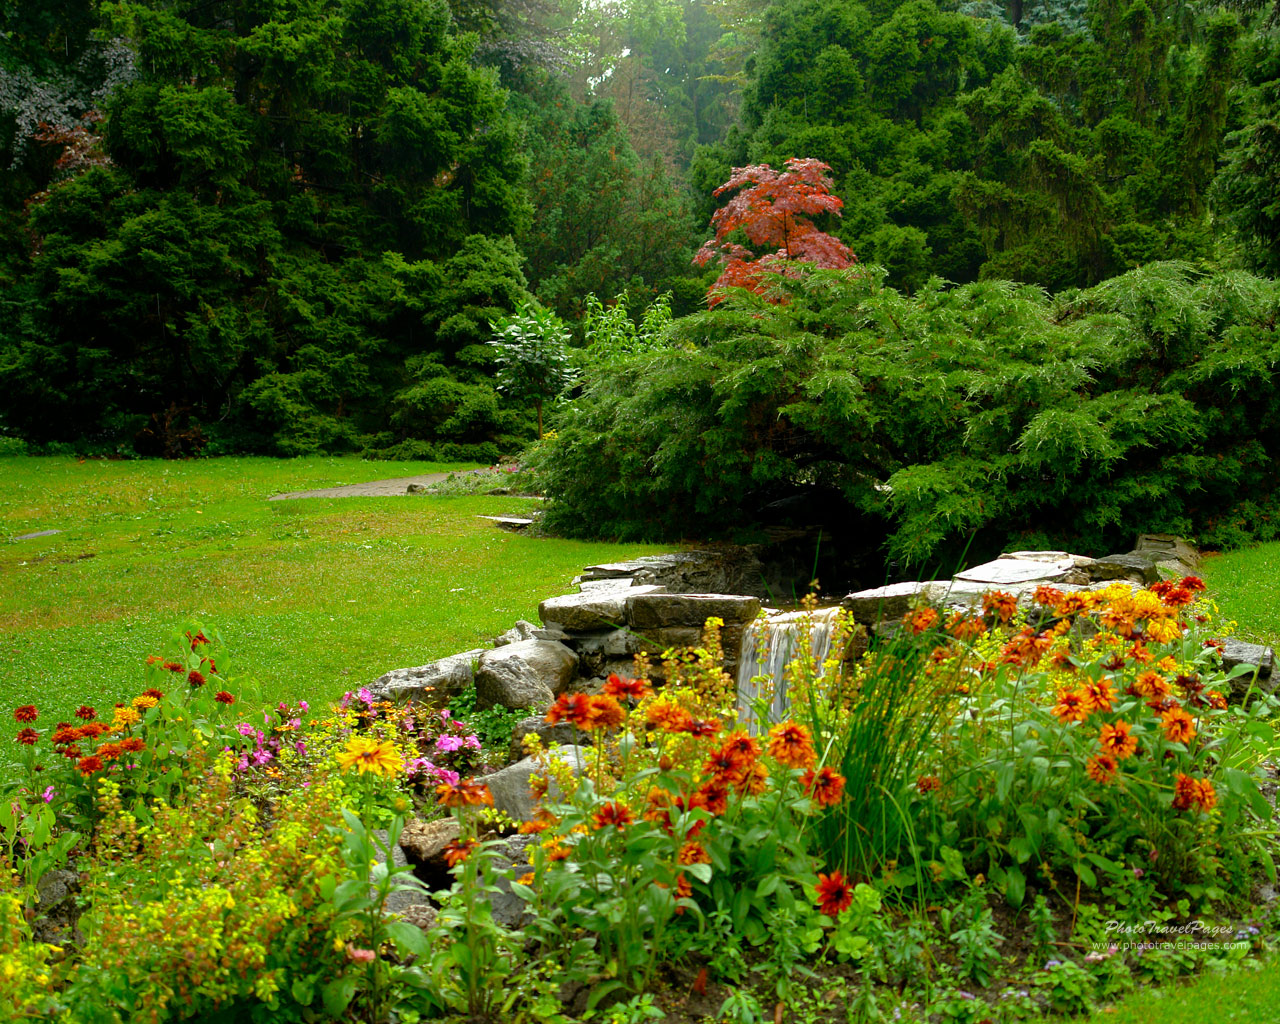 Garden screensavers and wallpaper wallpapersafari - Garden screensavers free ...